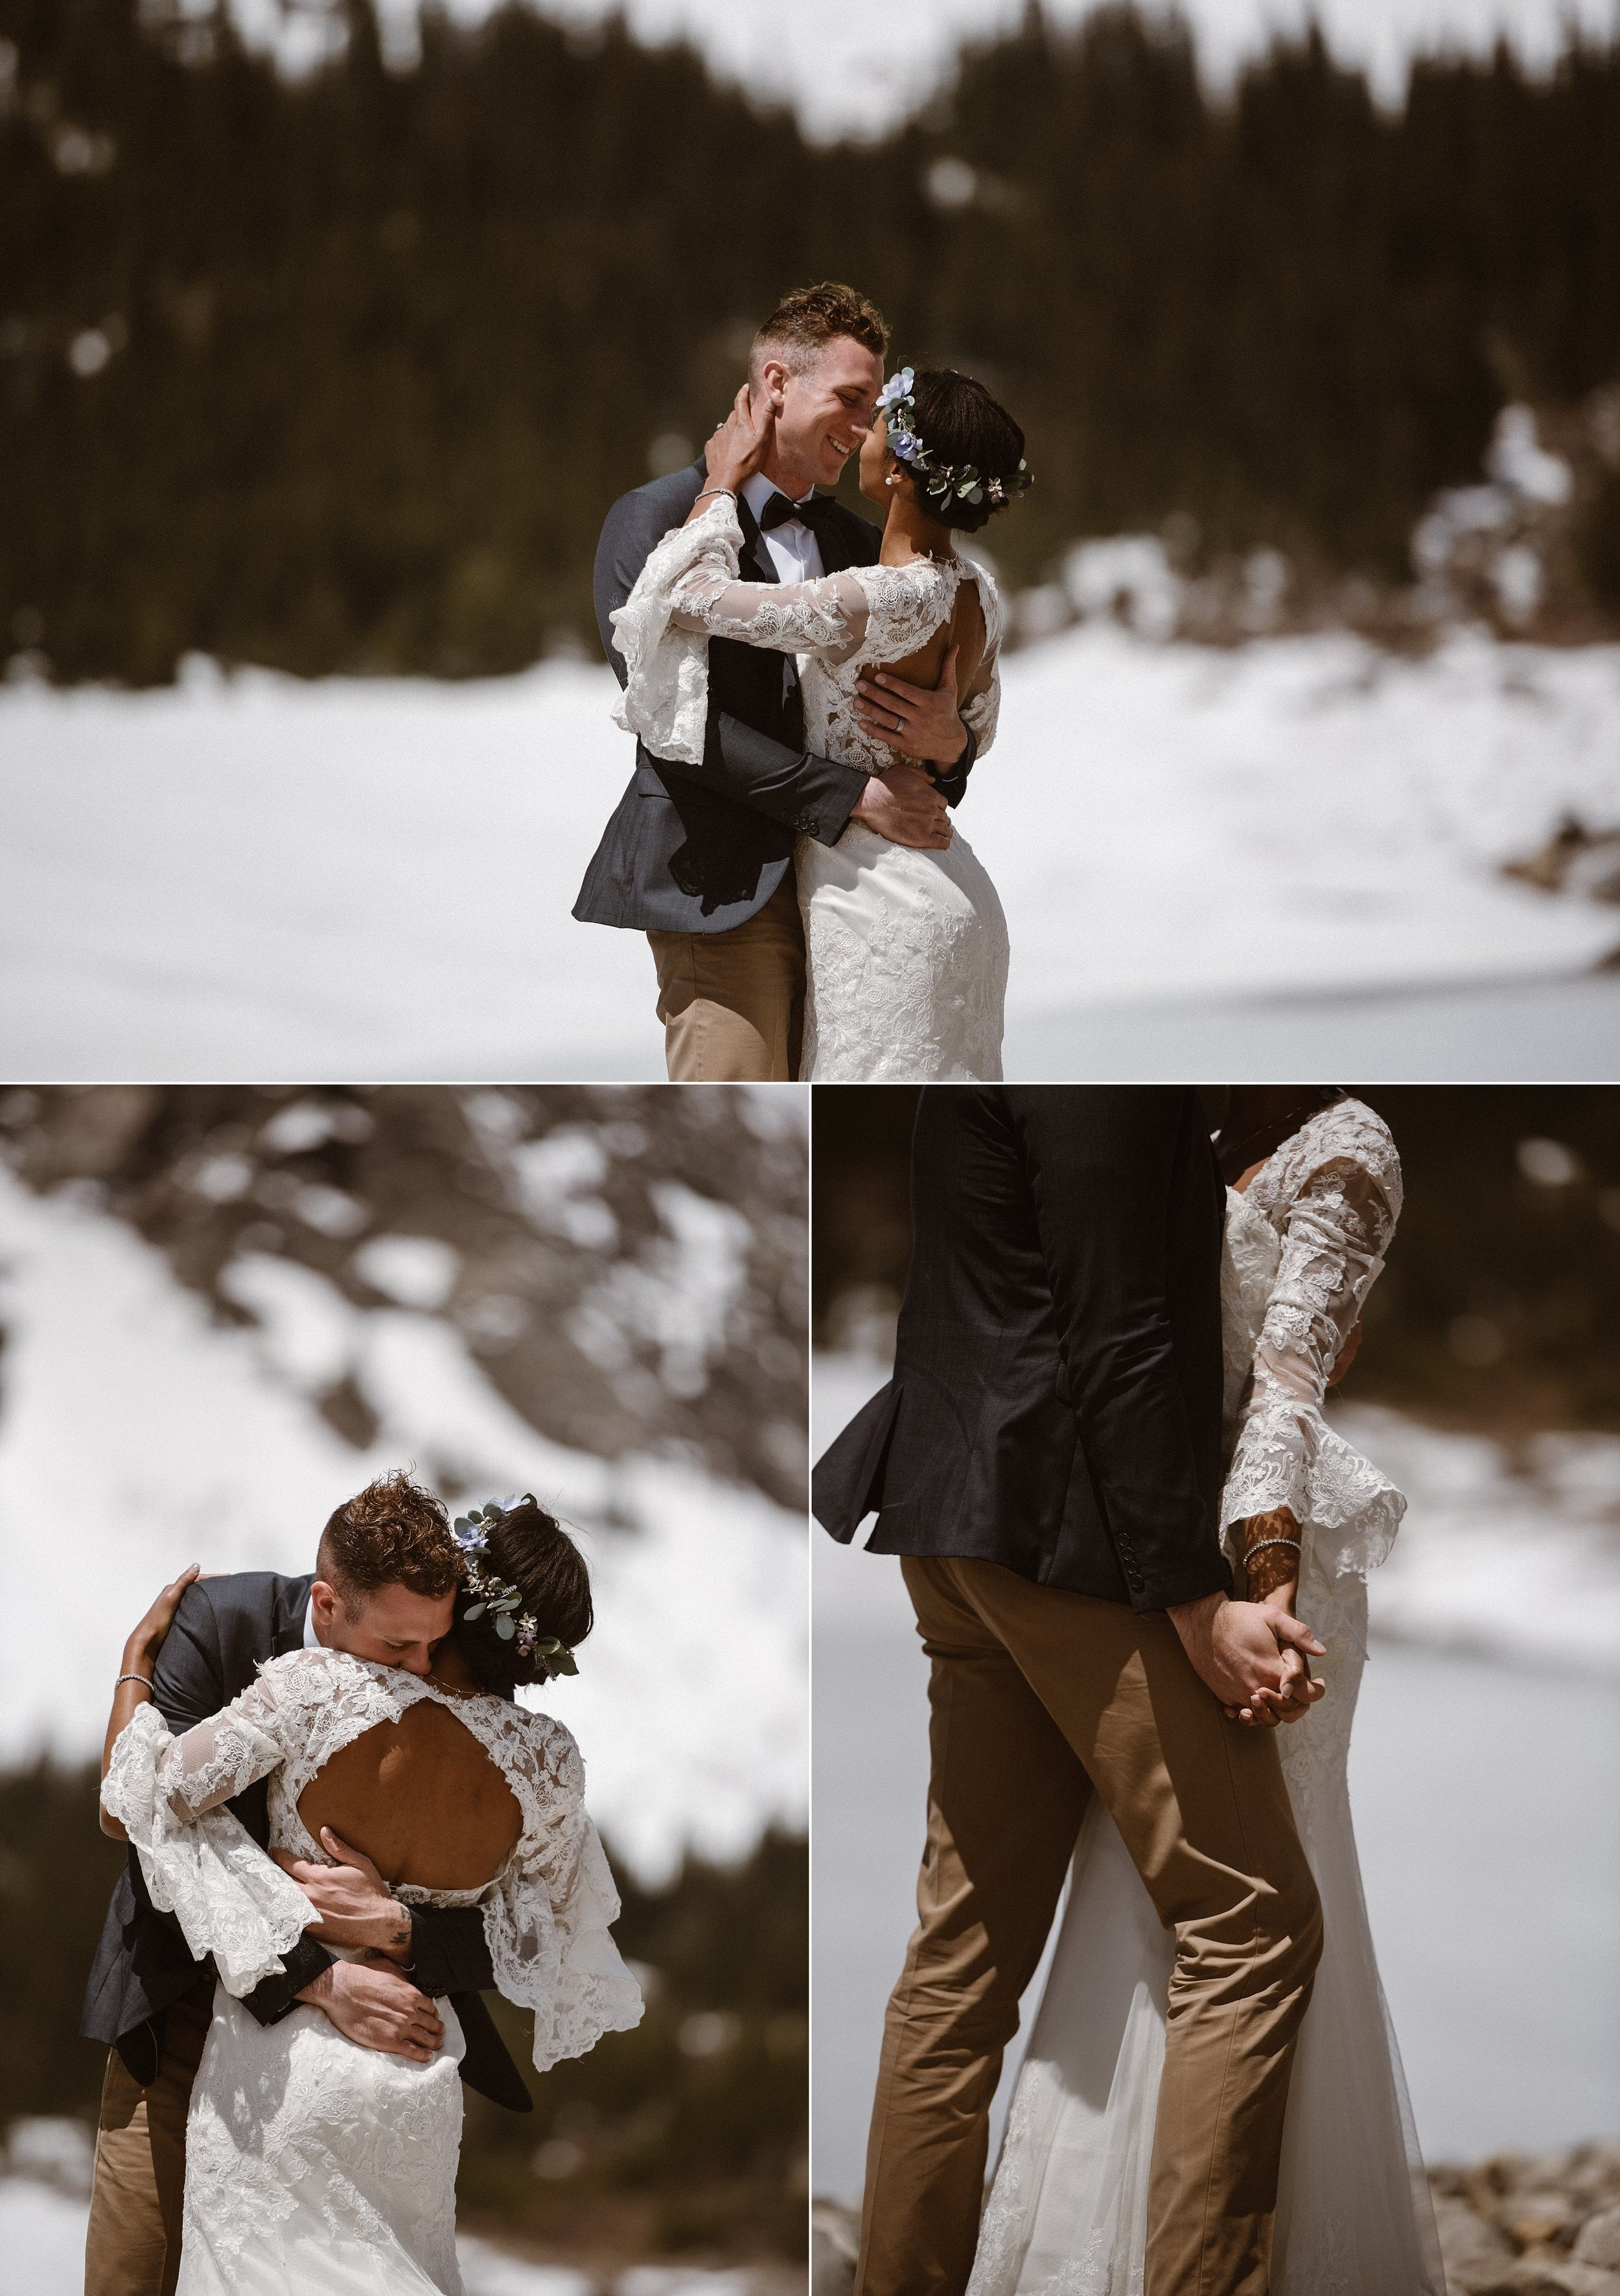 All the white from the snow and frozen Montgomery Reservoir, made Jared and Mikayla light up like vintage stars on a snowy stage. This stunning intimate elopement captured by adventure wedding photographer, Maddie Mae.